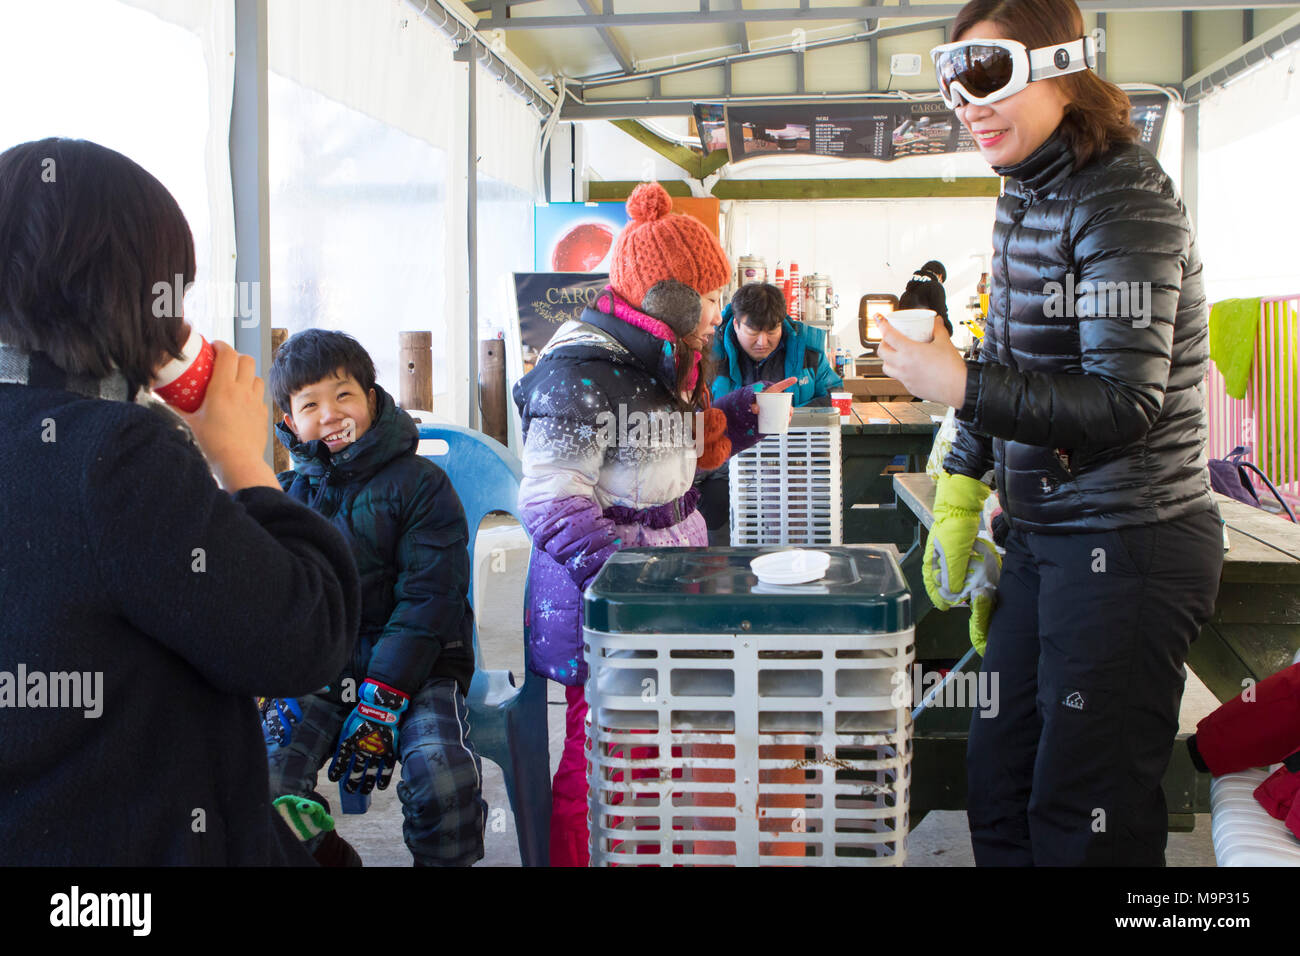 An Asian looking family is warming up inside a tent, next to a heater, with hot chocolate.  Yongpyong (Dragon Valley) Ski Resort is a ski resort in South Korea, located in Daegwallyeong-myeon, Pyeongchang, Gangwon-do. It is the largest ski and snowboard resort in Korea. Yongpyong will host the technical alpine skiing events for the 2018 Winter Olympics and Paralympics in Pyeongchang. Some scenes of the 2002 Korean Broadcasting System drama Winter Sonata were filmed at the resort. - Stock Image